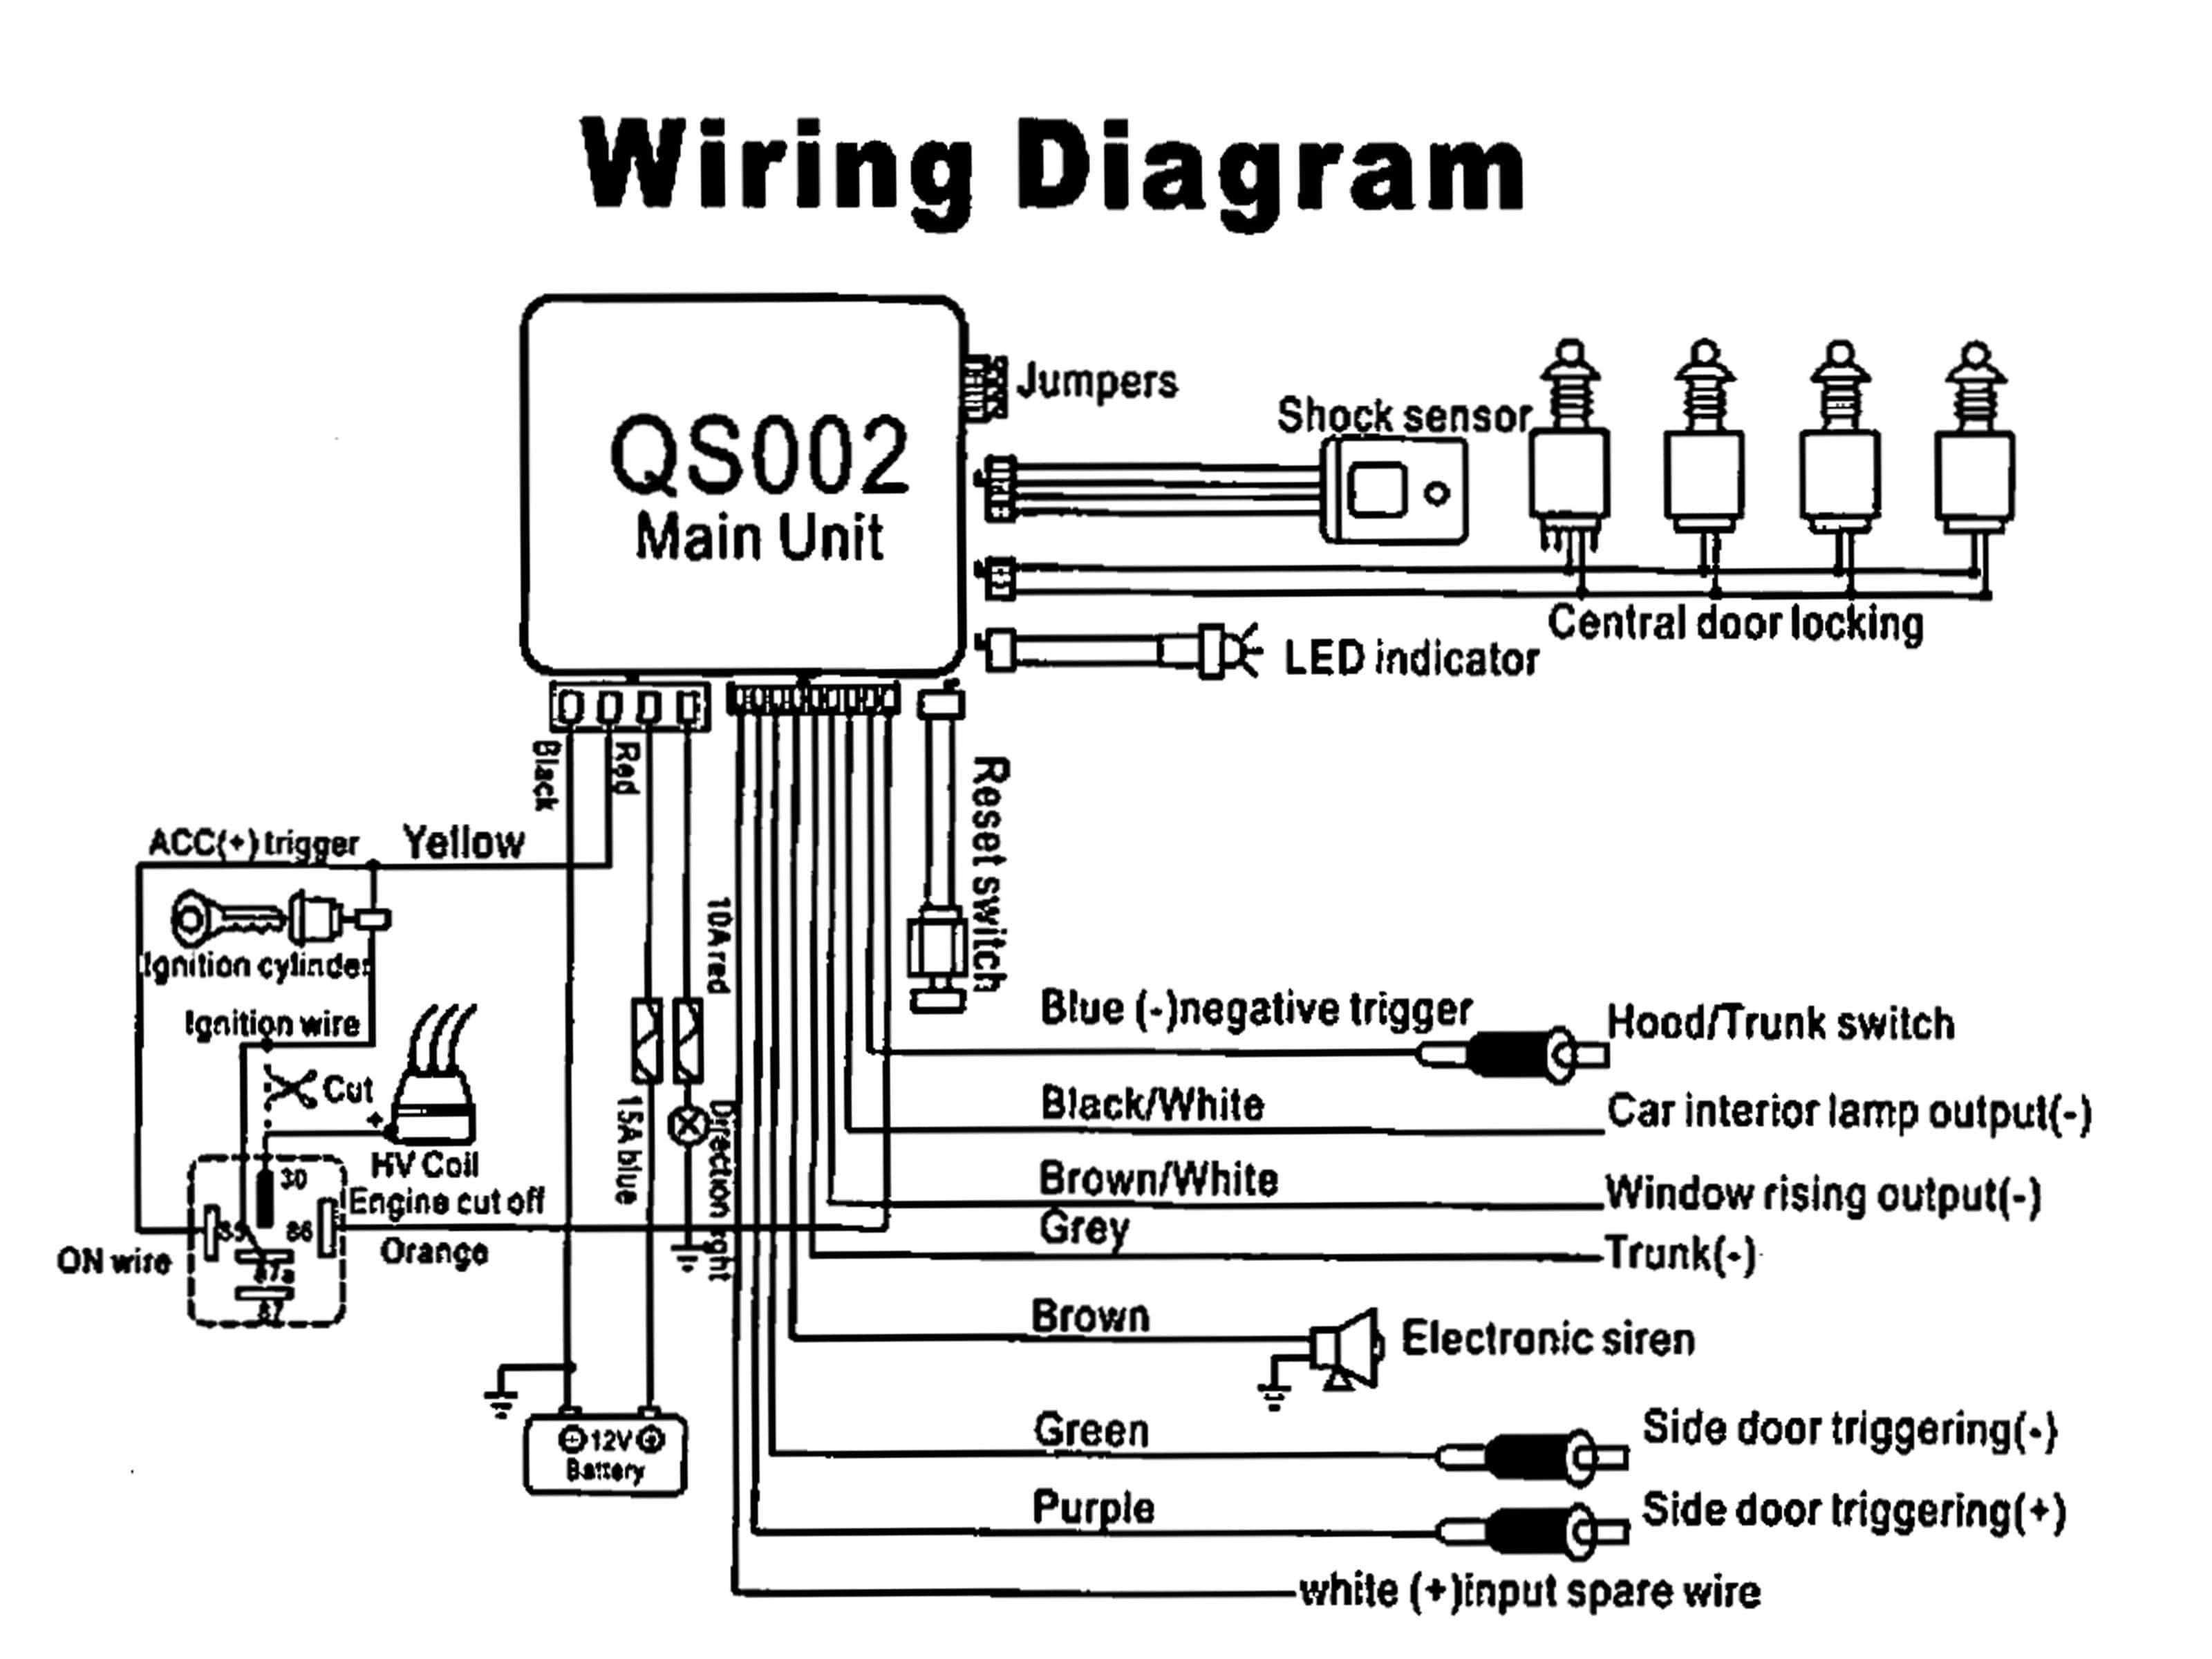 Enchanting boat horn wiring diagram embellishment everything you fancy omega air horn wiring diagram frieze electrical and wiring asfbconference2016 Gallery